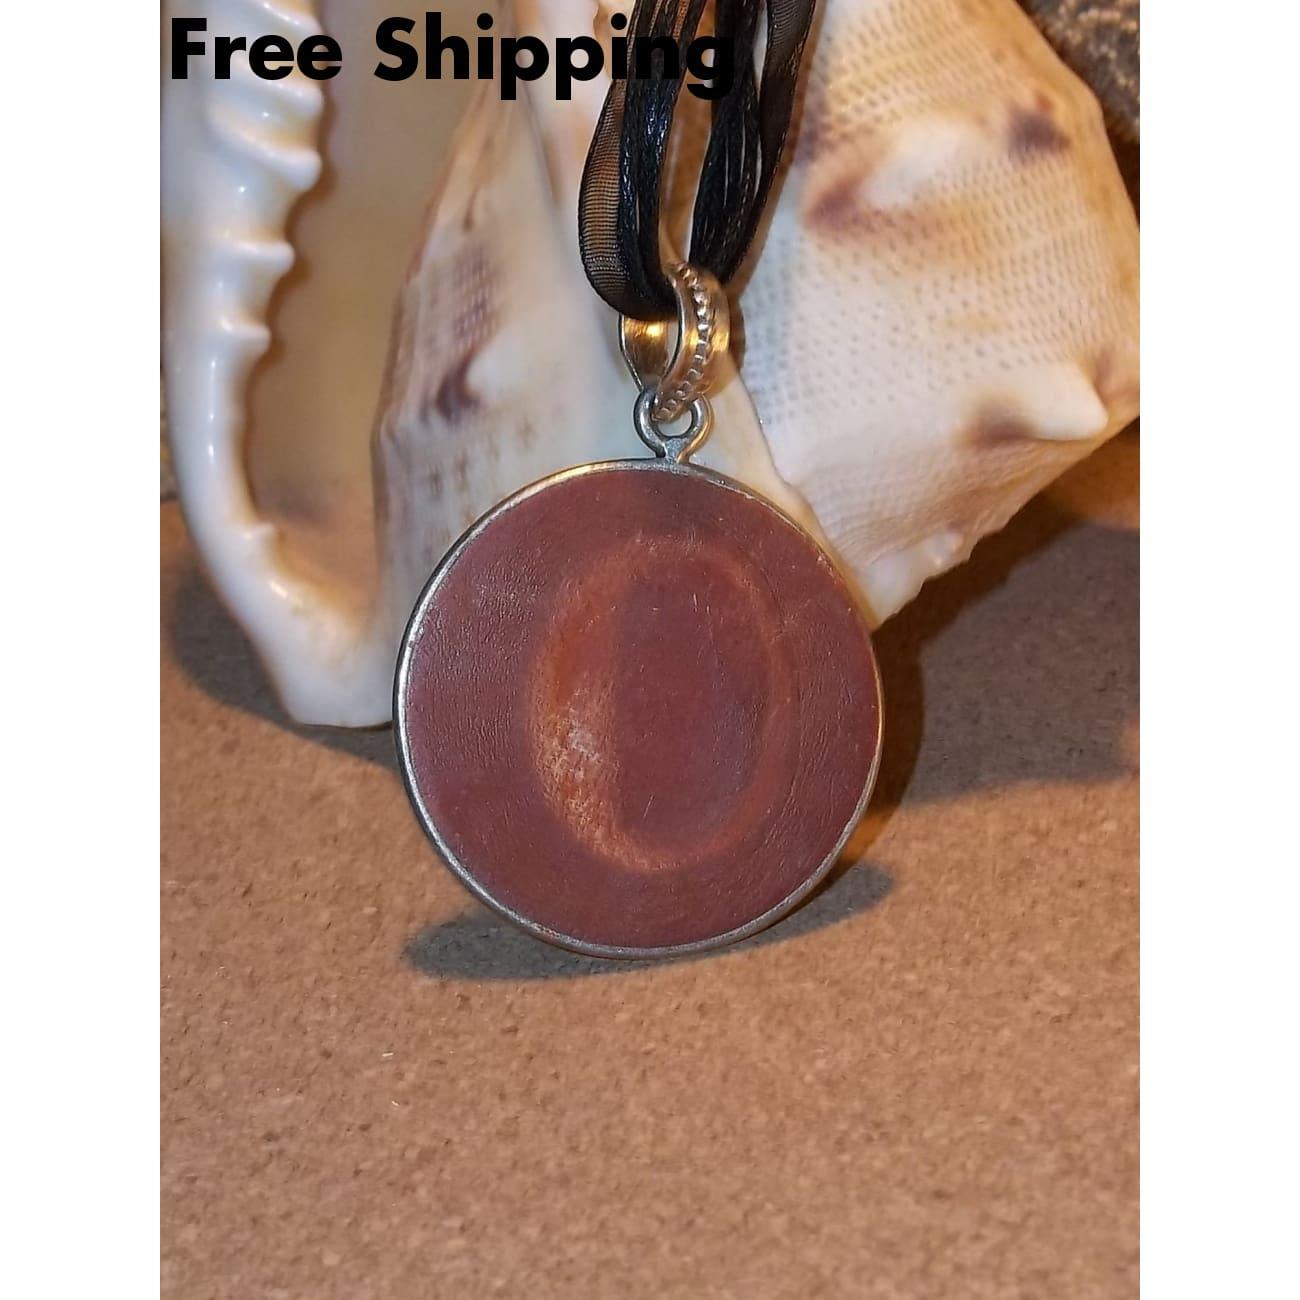 Vintage Sun Red Jasper Cabochon Medallion Hand Crafted Pendant On 18 Black Organza Cording - Vintage Handcrafted Artisan